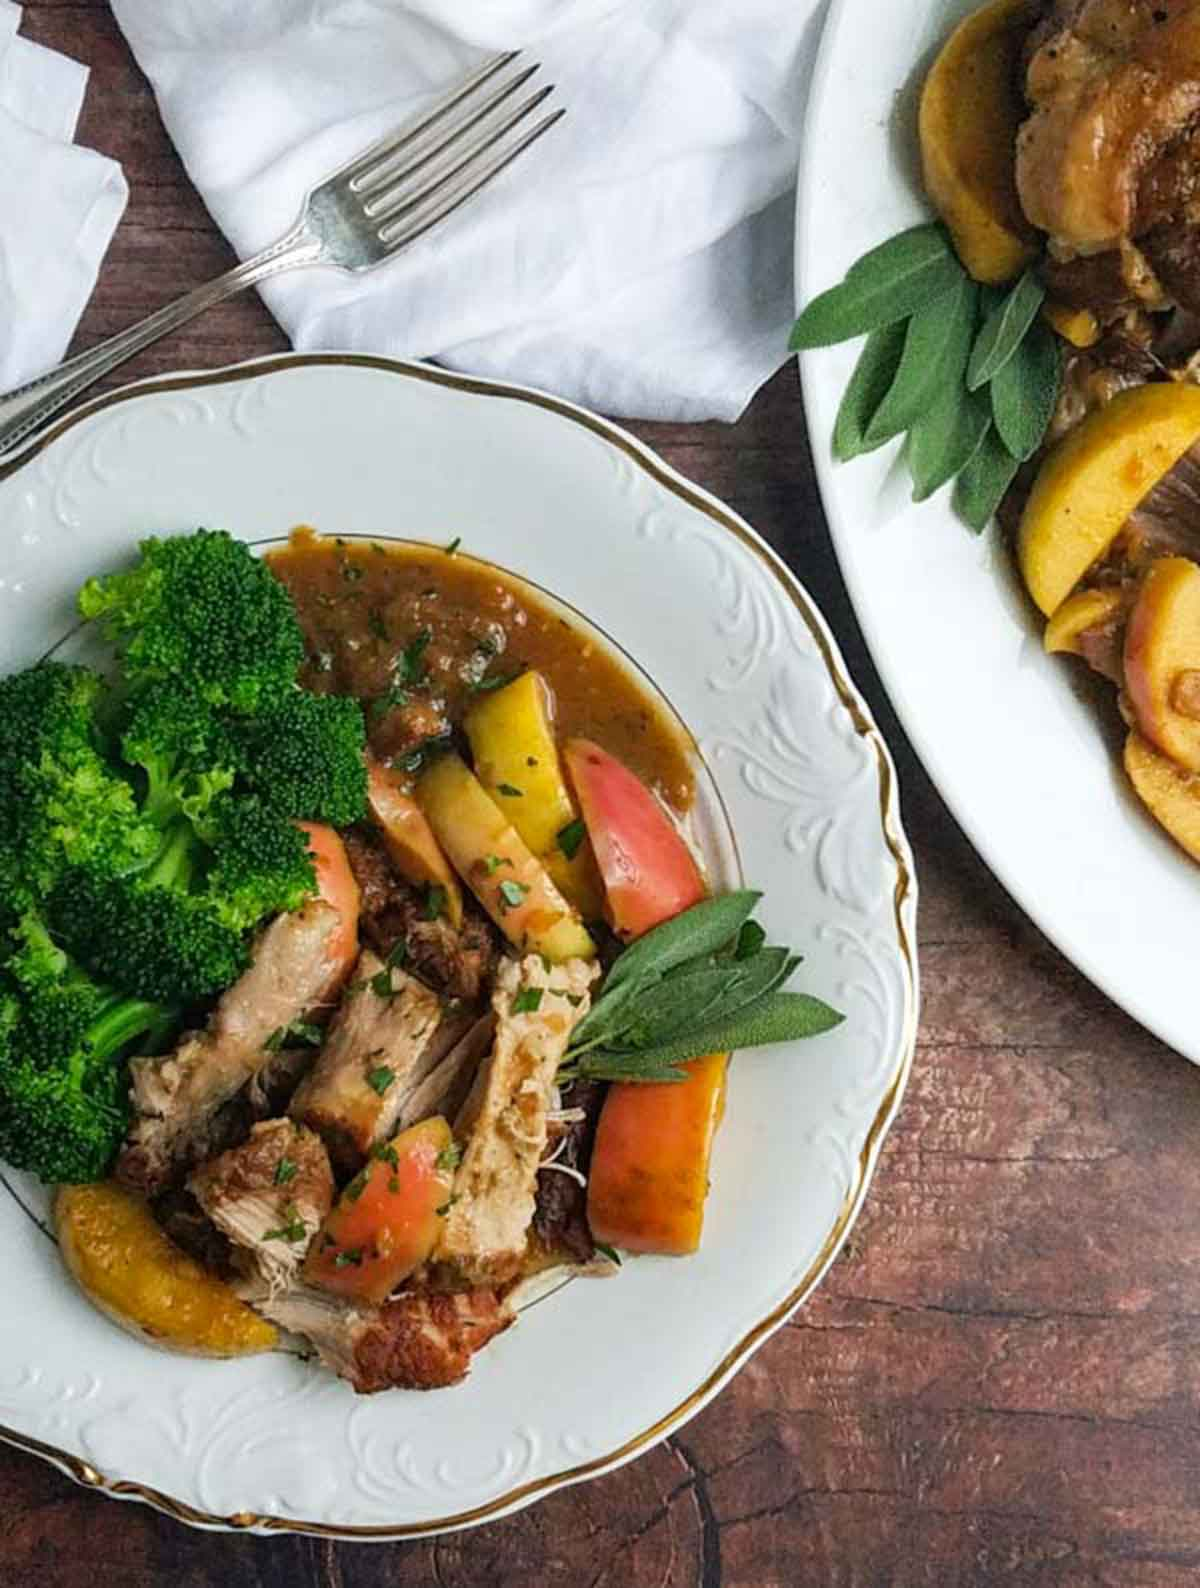 dinner plate with roast pork, apples and broccoli